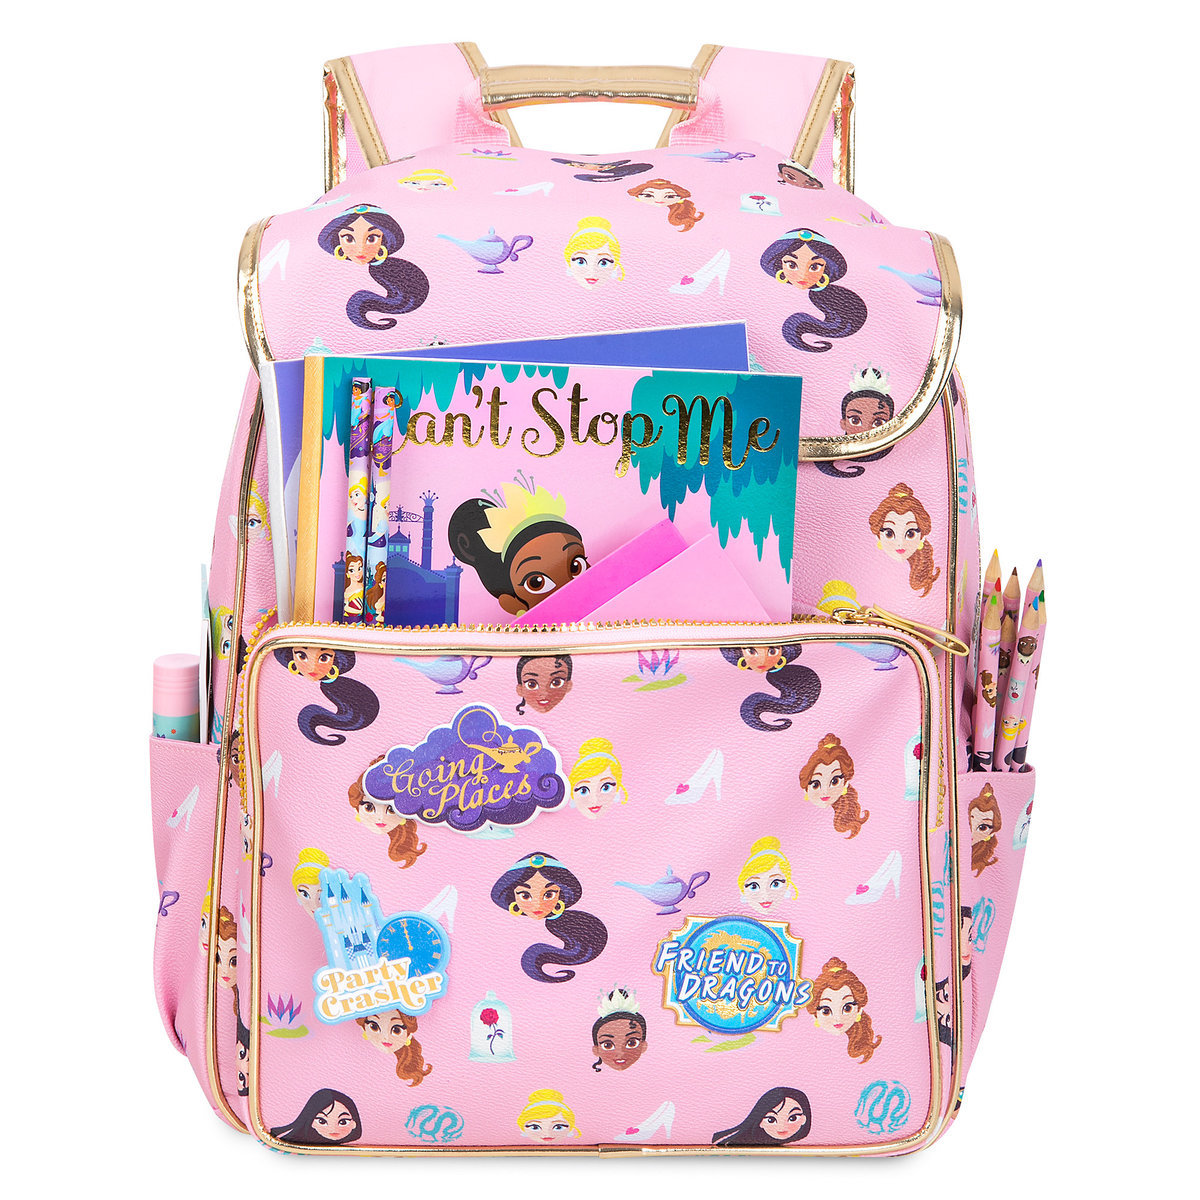 Product Image of Disney Princess Backpack - Personalizable   4 8da9676d3079a